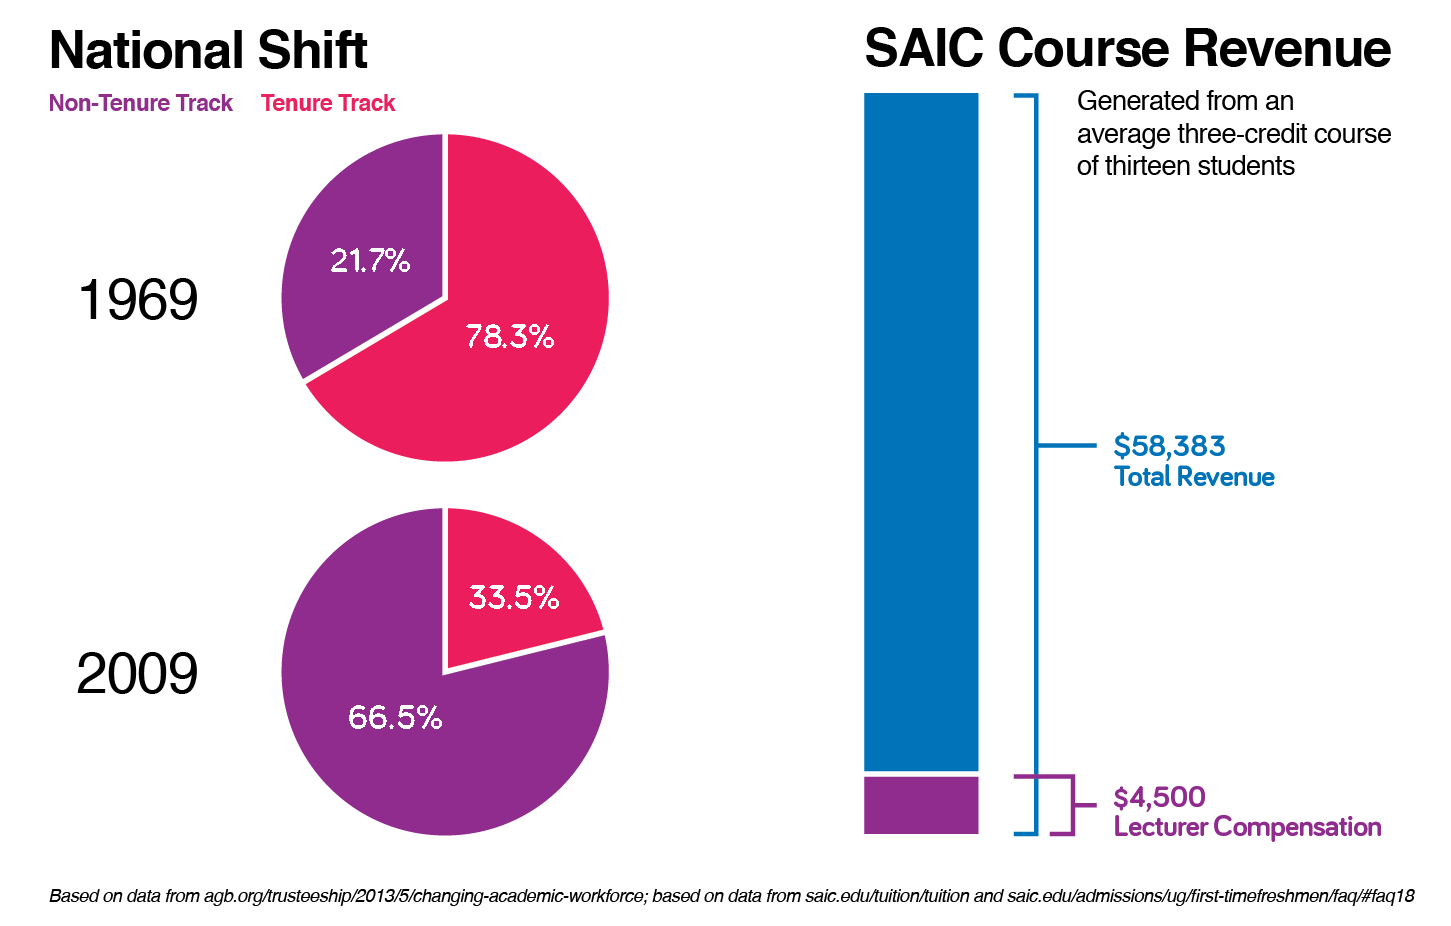 National Shift and Course Revenue